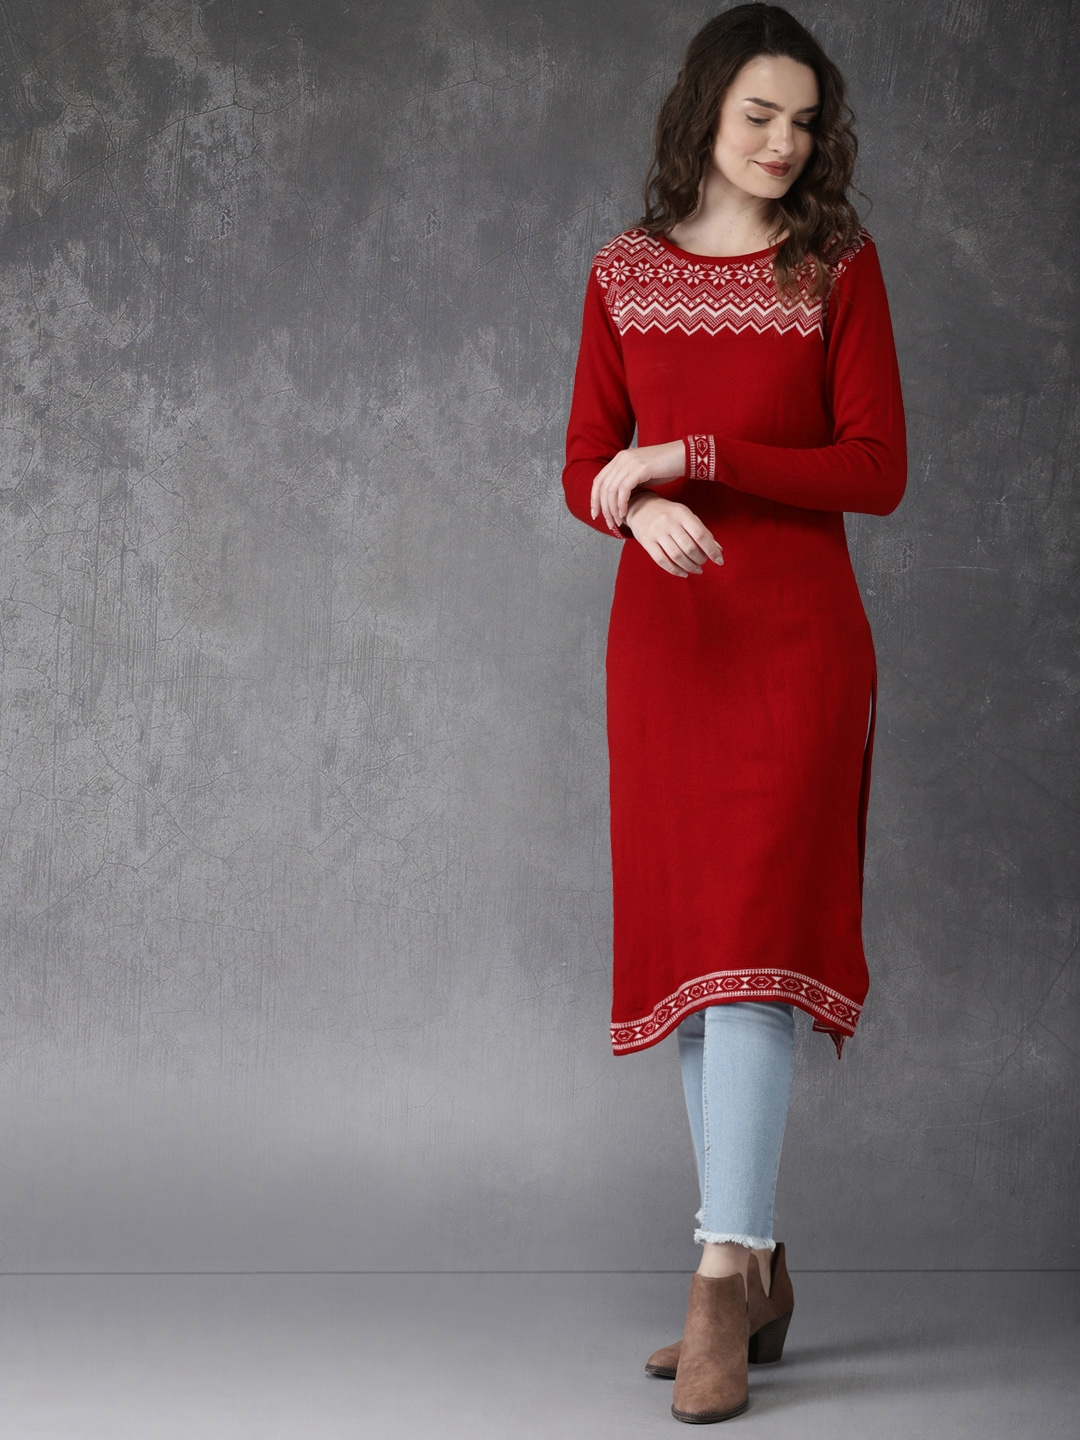 0b9c7372977 Buy Anouk Women Red Knitted Sweater Kurta - Kurtas for Women 4424288 ...